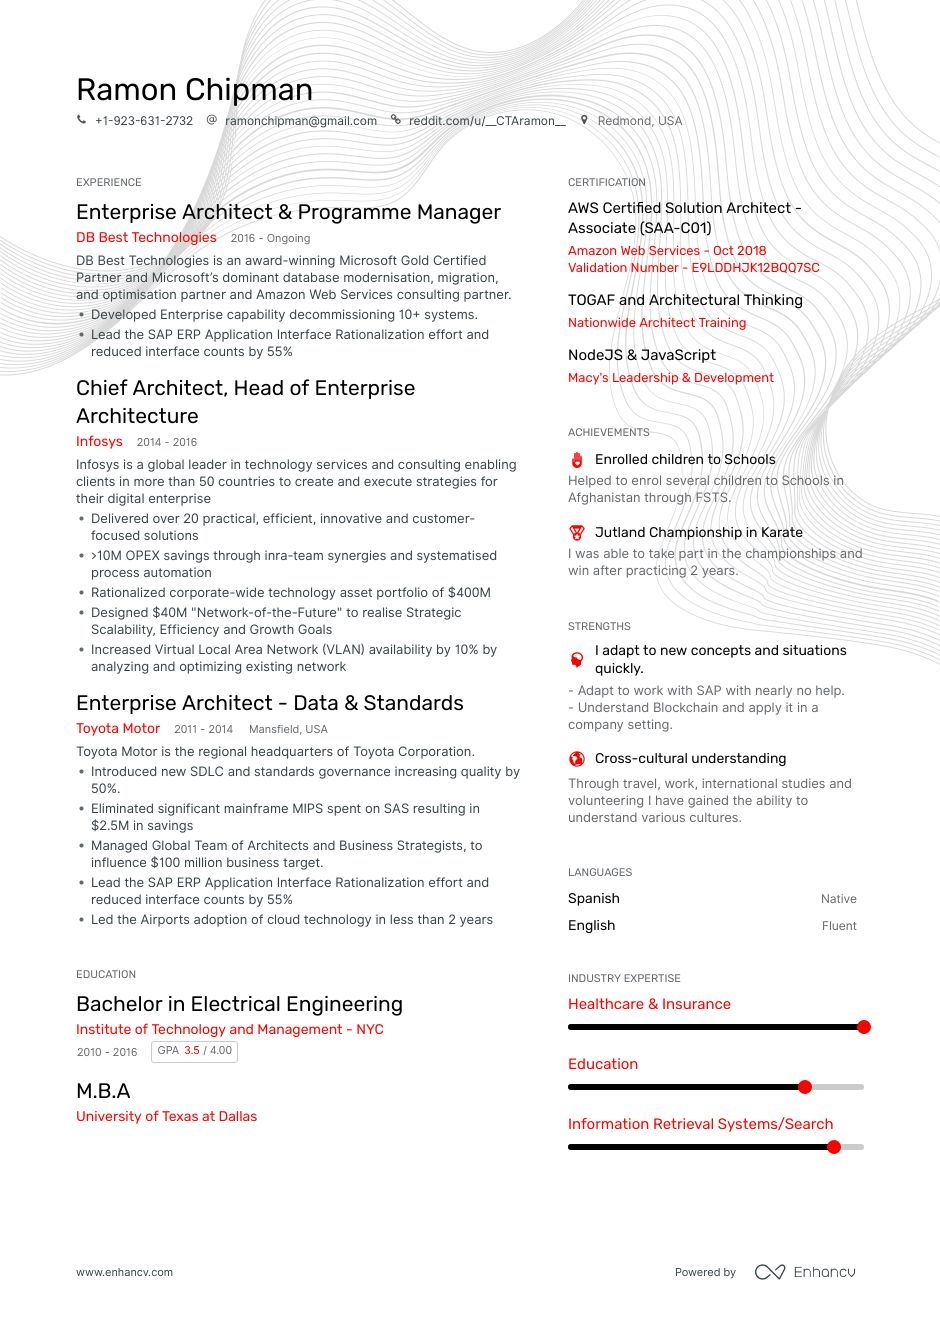 Enterprise Architect Resume Samples and Writing Guide for